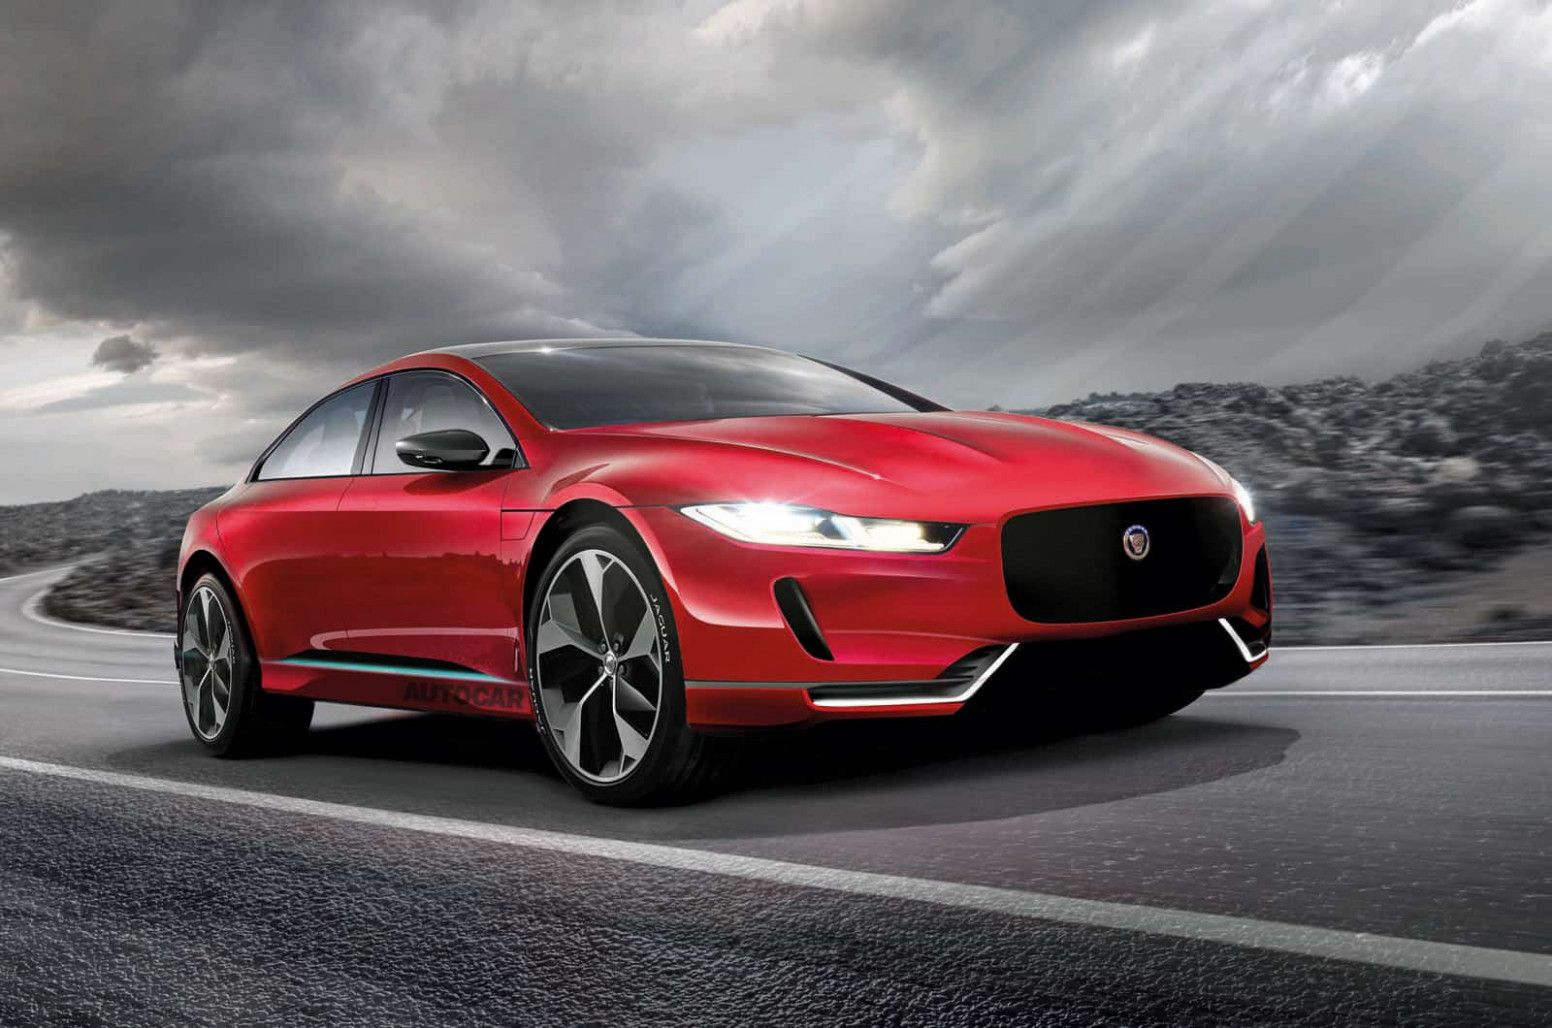 2021 Jaguar Xf Launch Date And Idea 2021 Jaguar Xf Release Date And Concept 2021 Jaguar Xf Next Jag Xj To Be All Electric Four Door Powered By Latest I Pa Di 2020